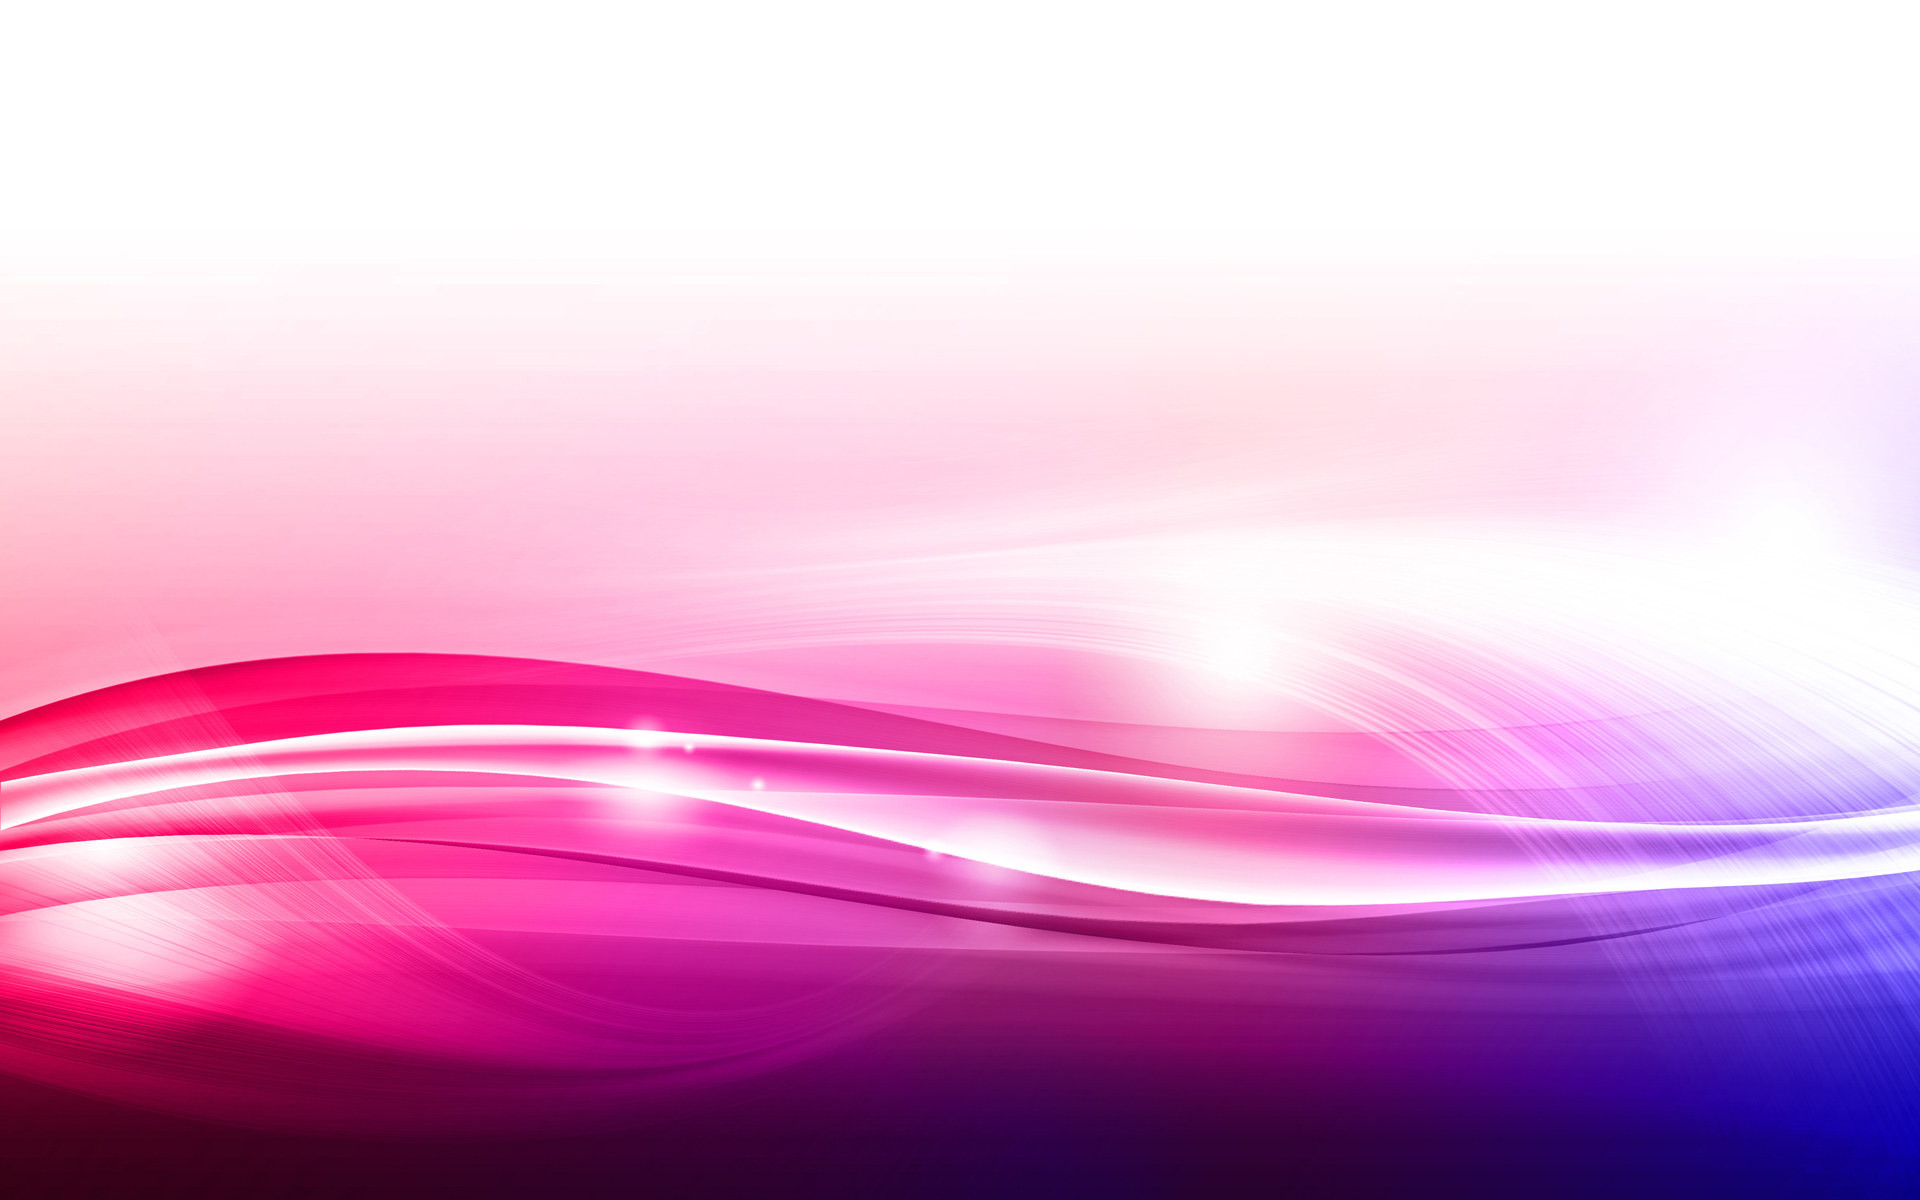 Hair Background | Abstract colour – abstract coulour backgrounds 1440*900  Wallpaper 4 | logo | Pinterest | Logos